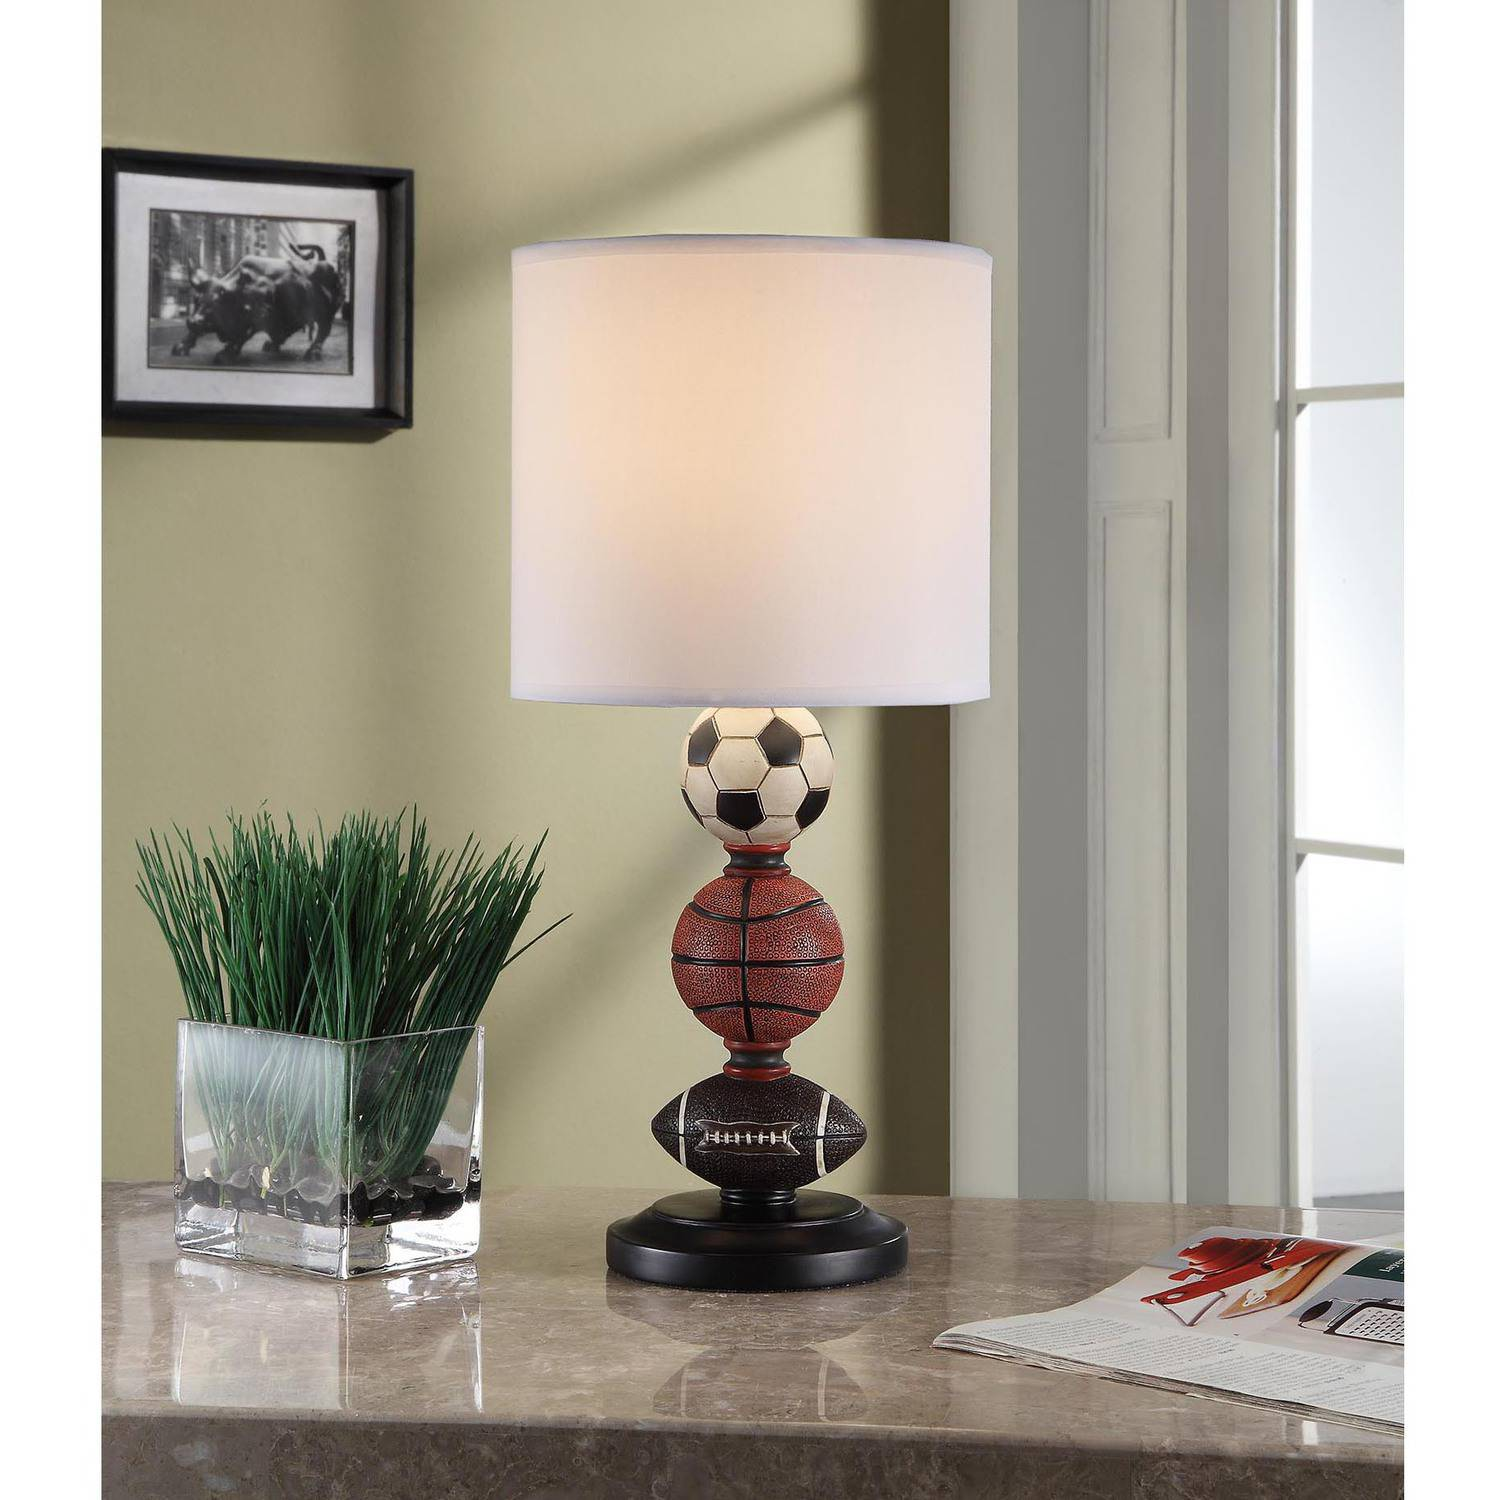 your zone sports table lamp with CFL bulb